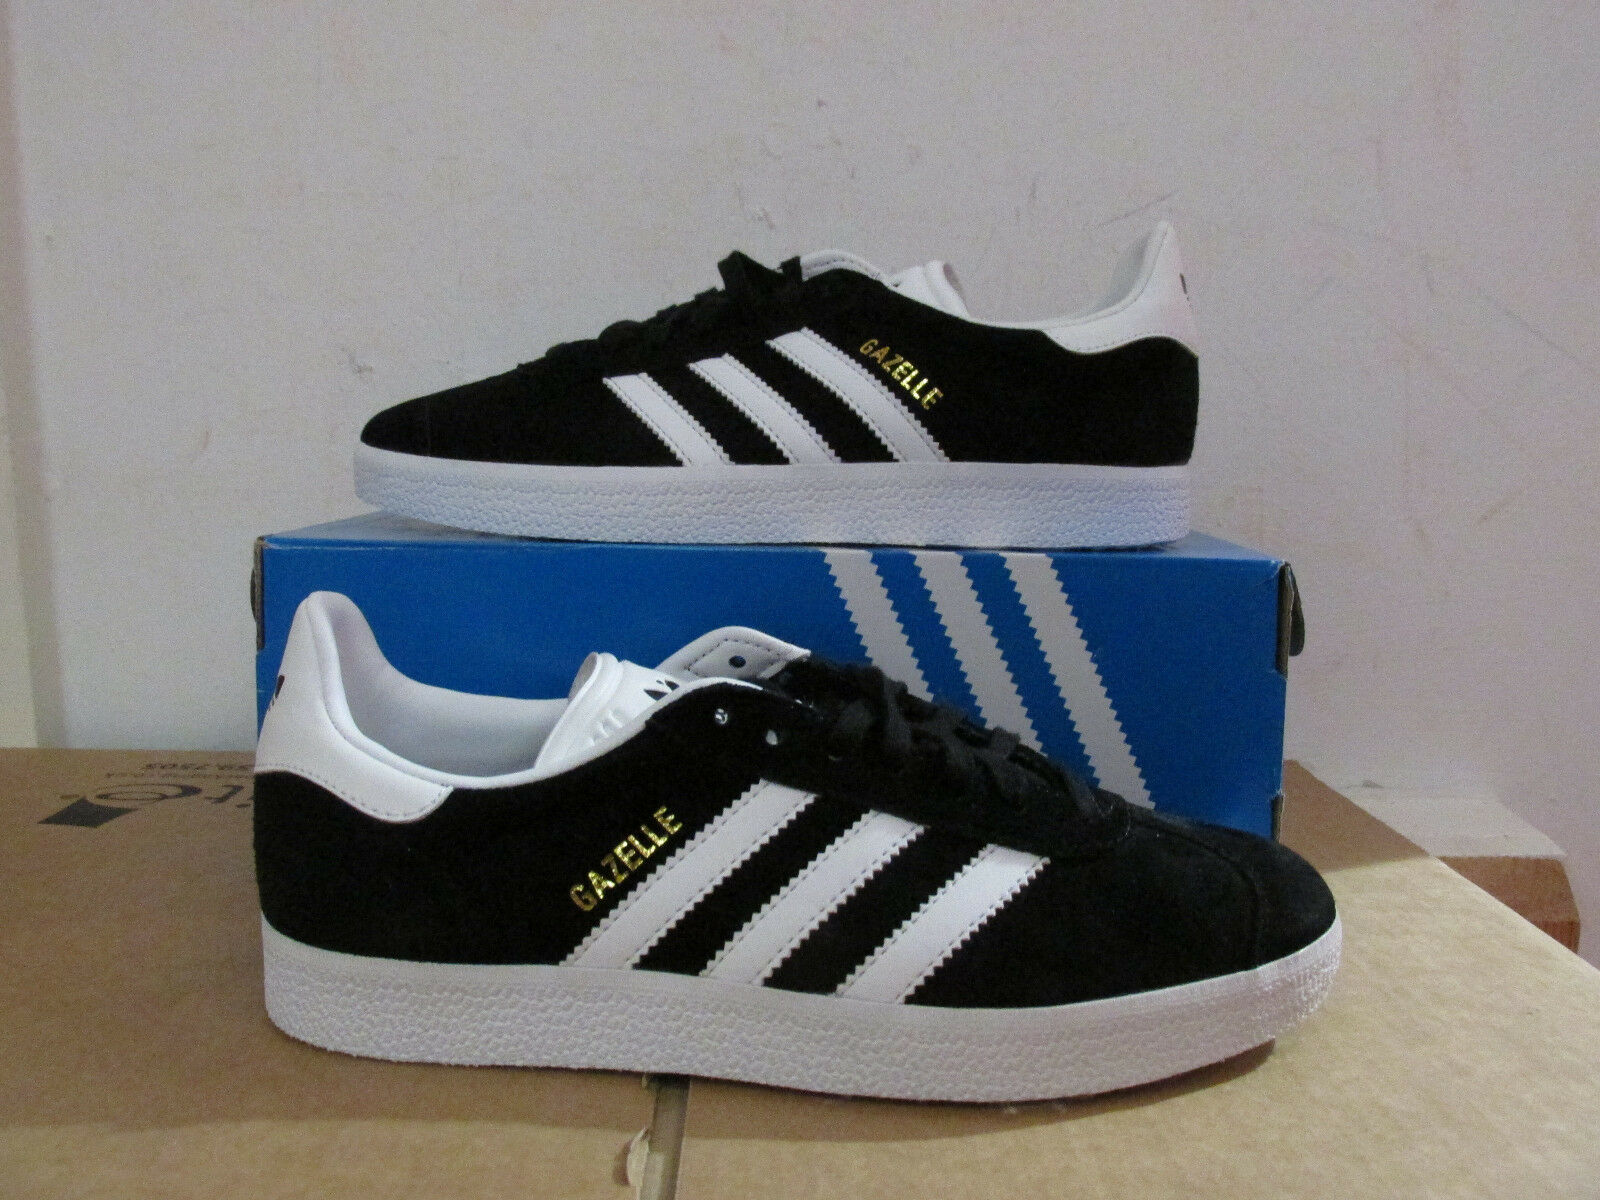 Adidas Originals Gazelle BB5476 Mens Running Trainers Sneakers CLEARANCE